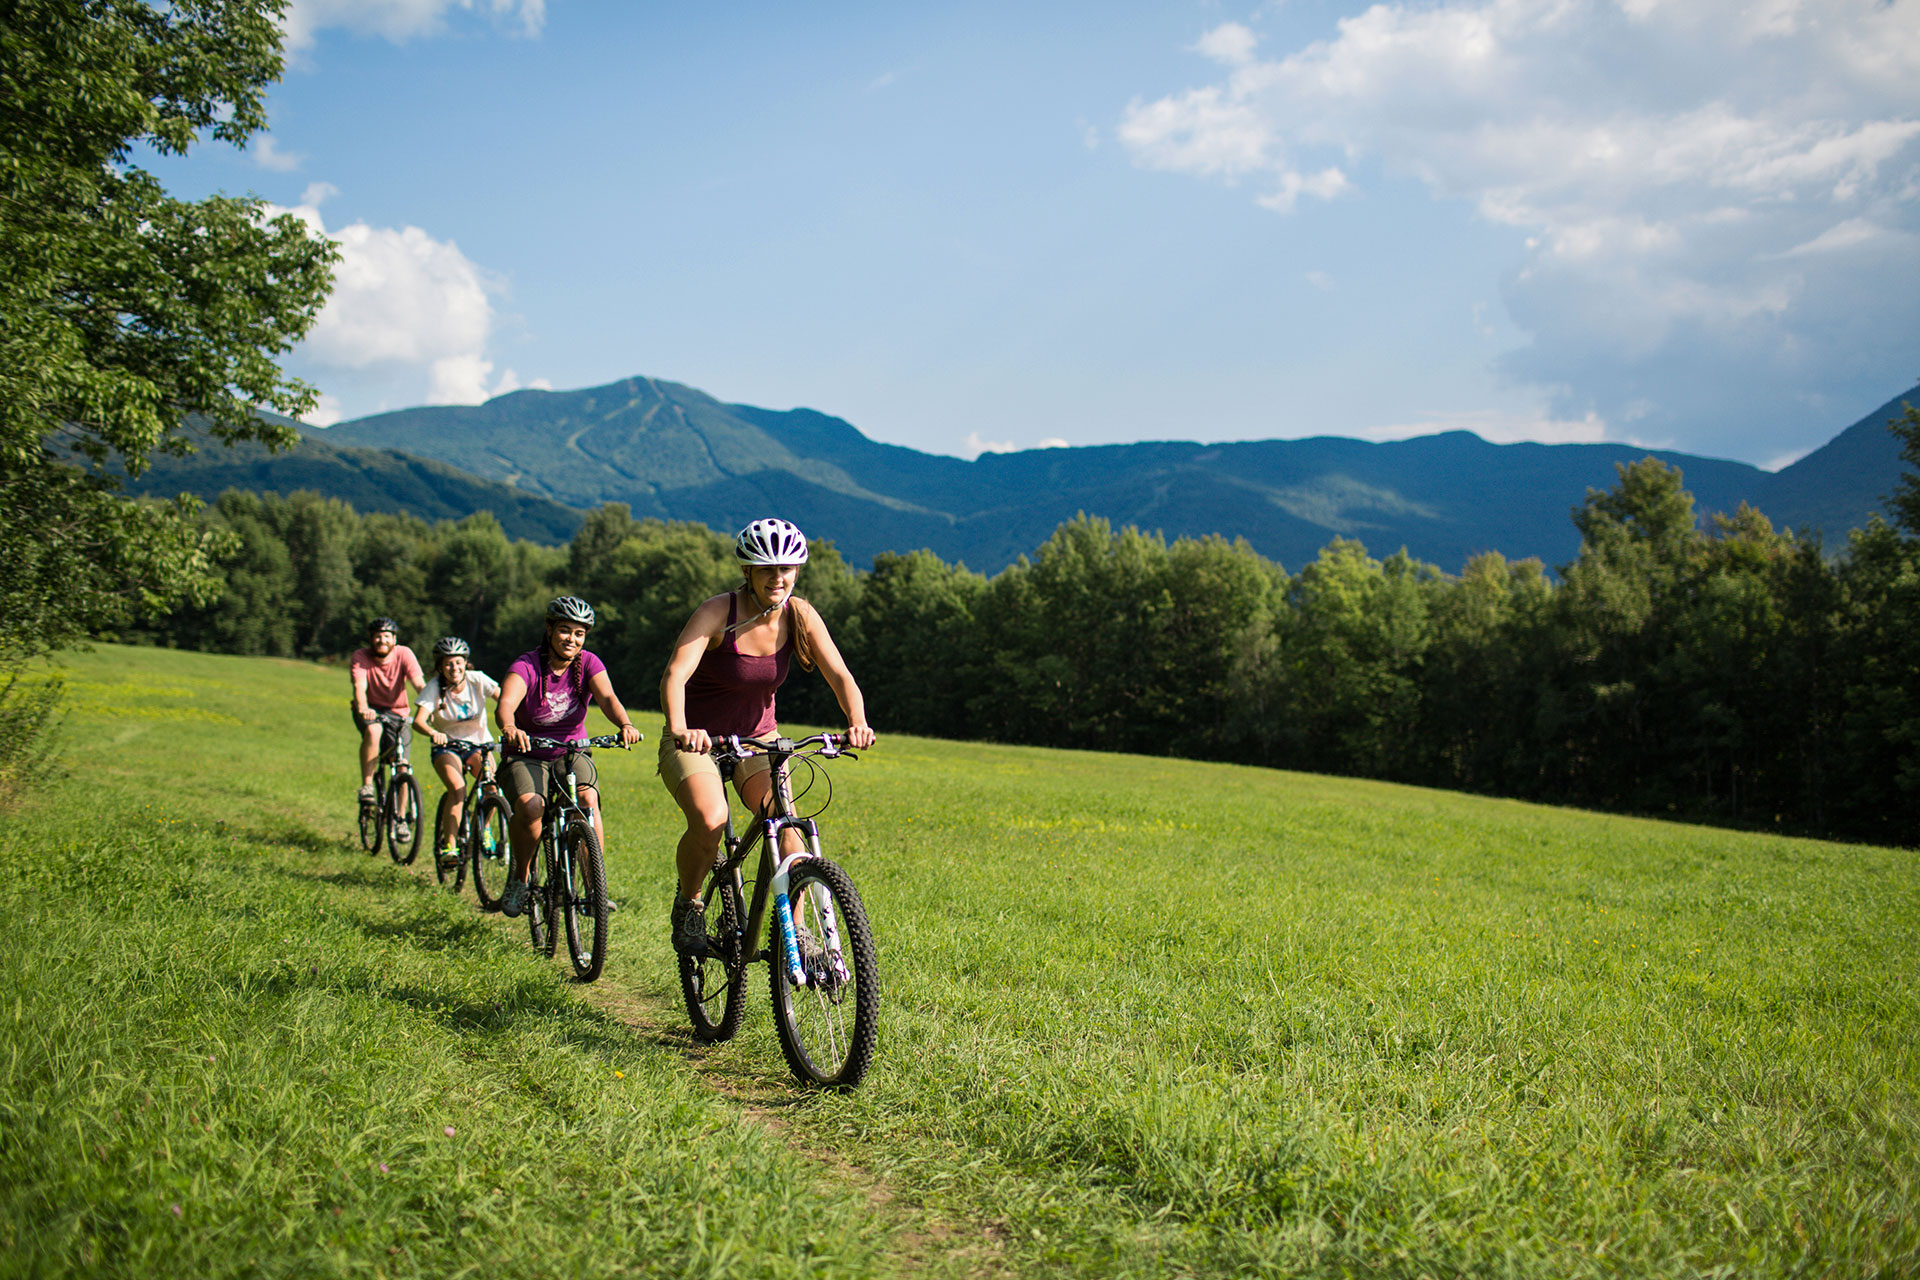 Biking at Smugglers' Notch in Vermont; Courtesy of Smugglers' Notch